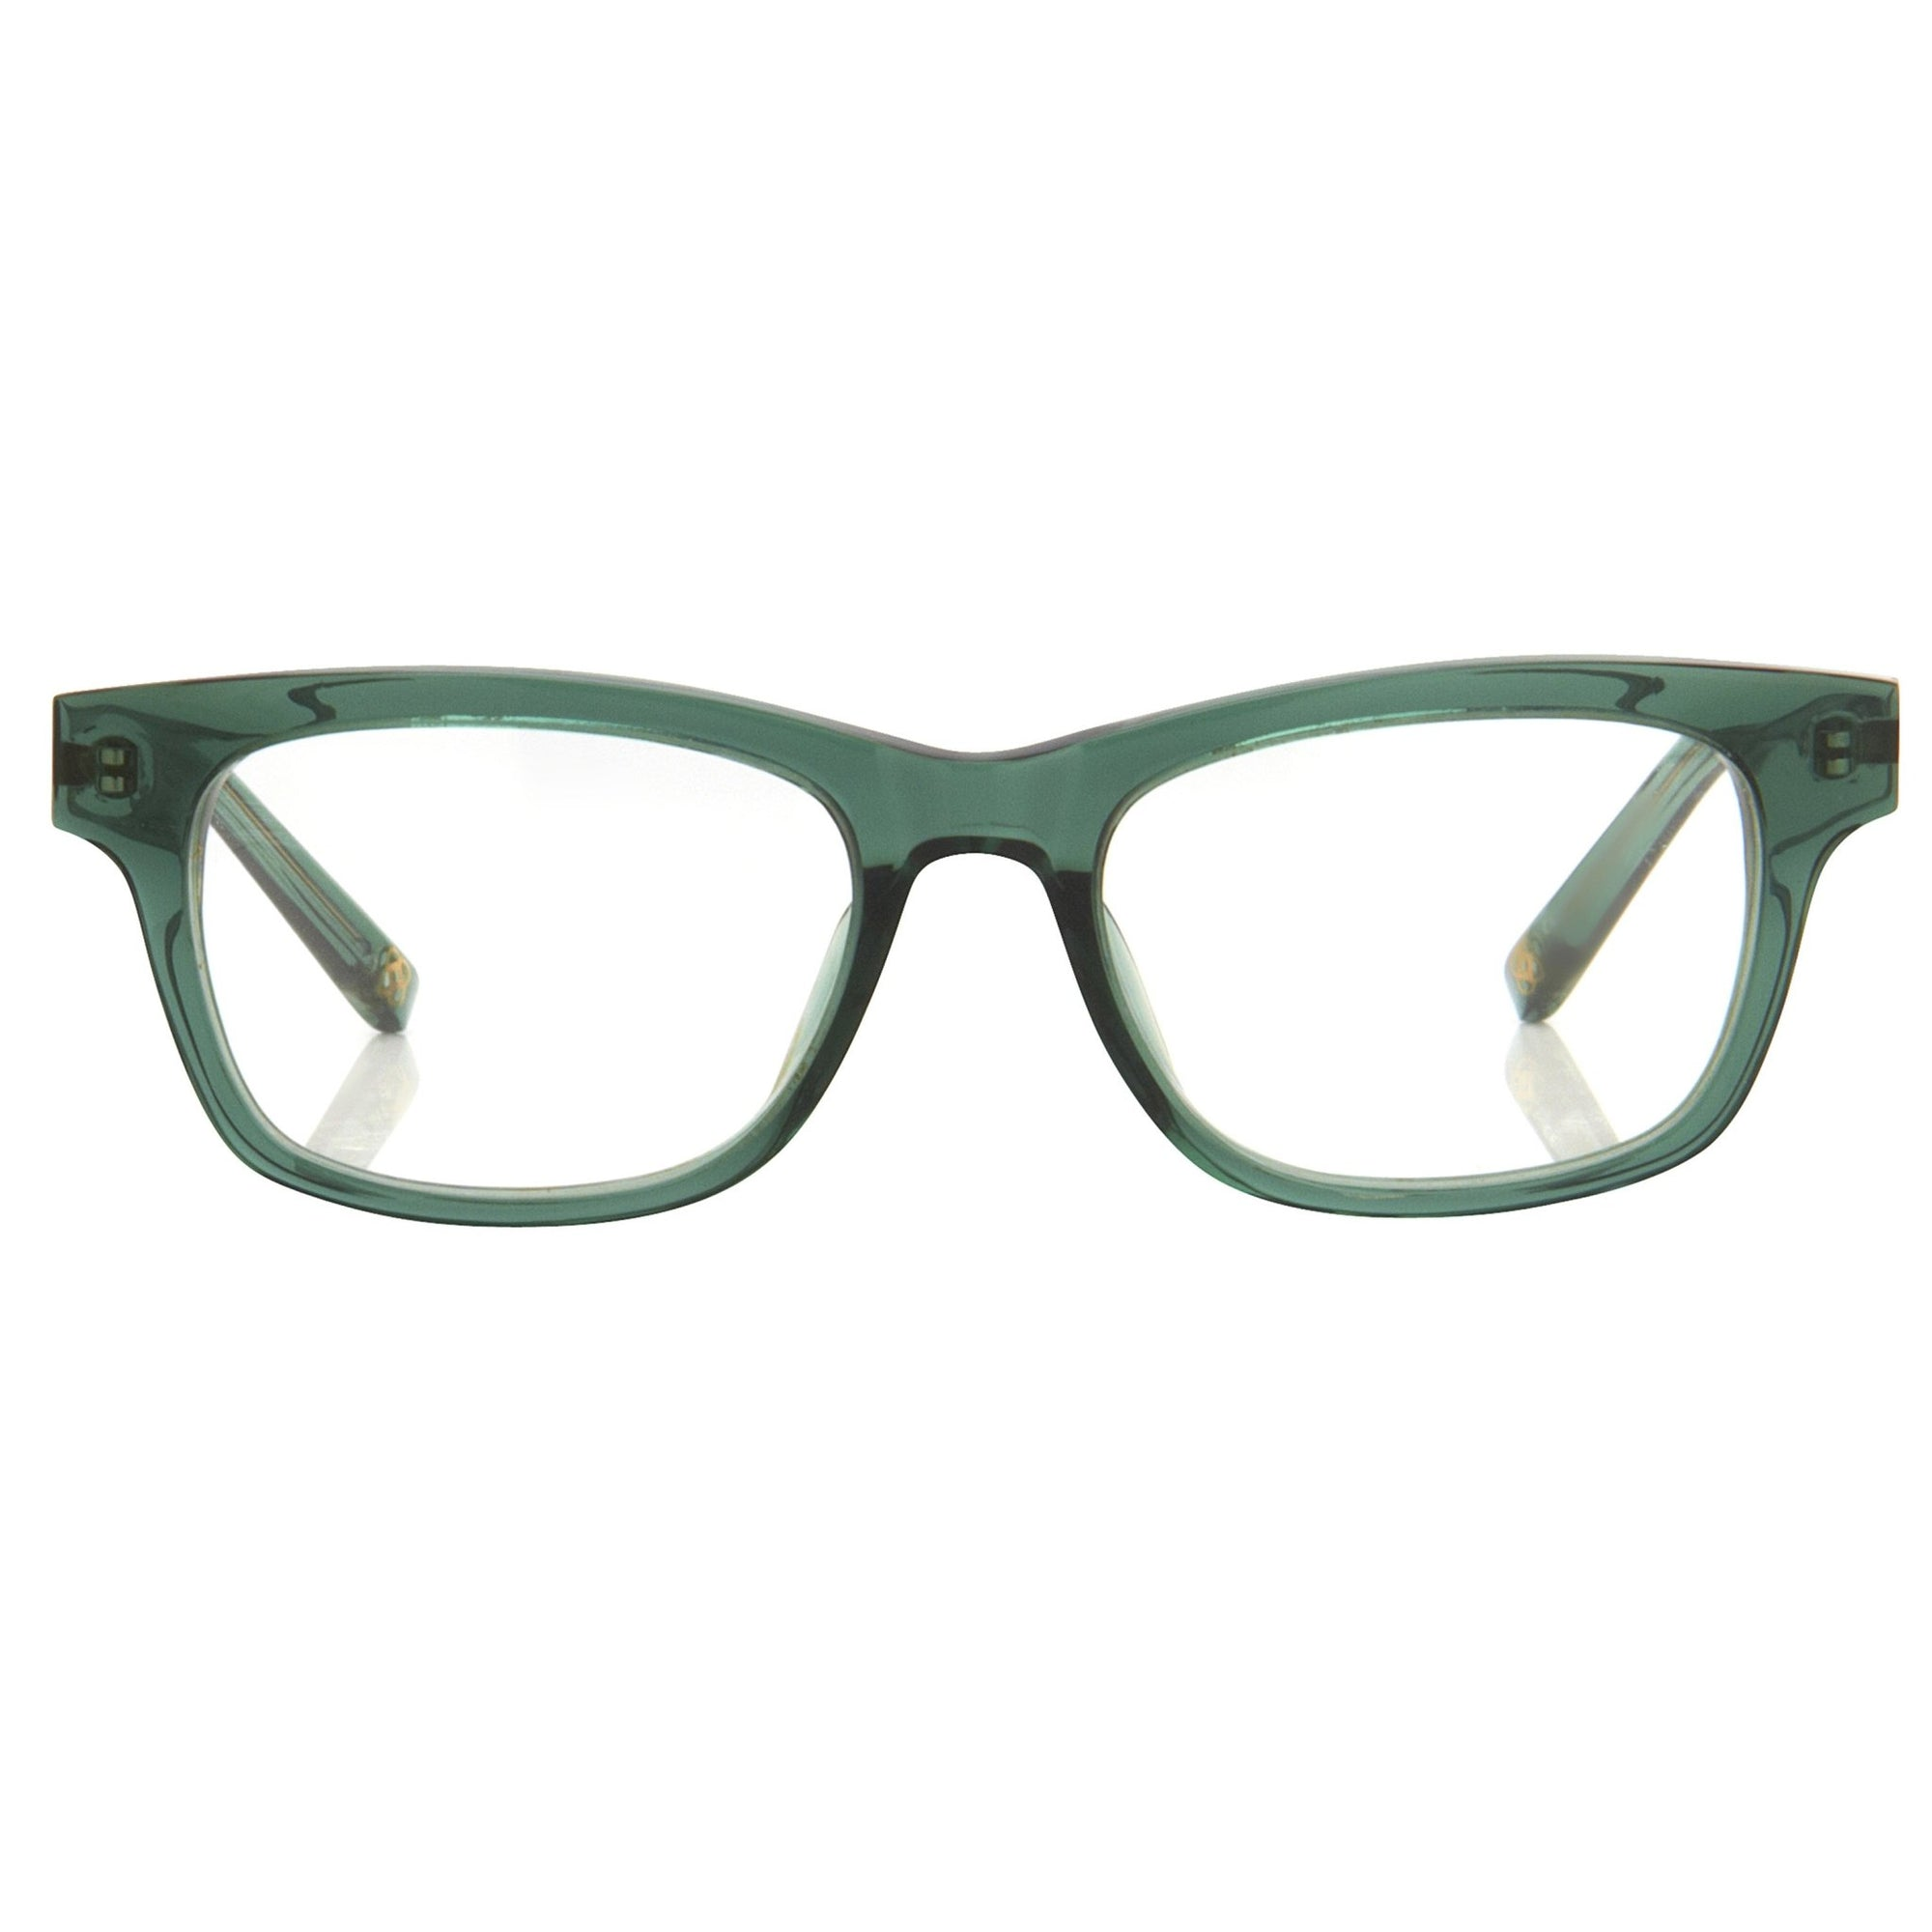 Oscar De La Renta Unisex Eyeglasses Rectangle Forest Green with Clear Lenses - ODLR41C3OPT - Watches & Crystals